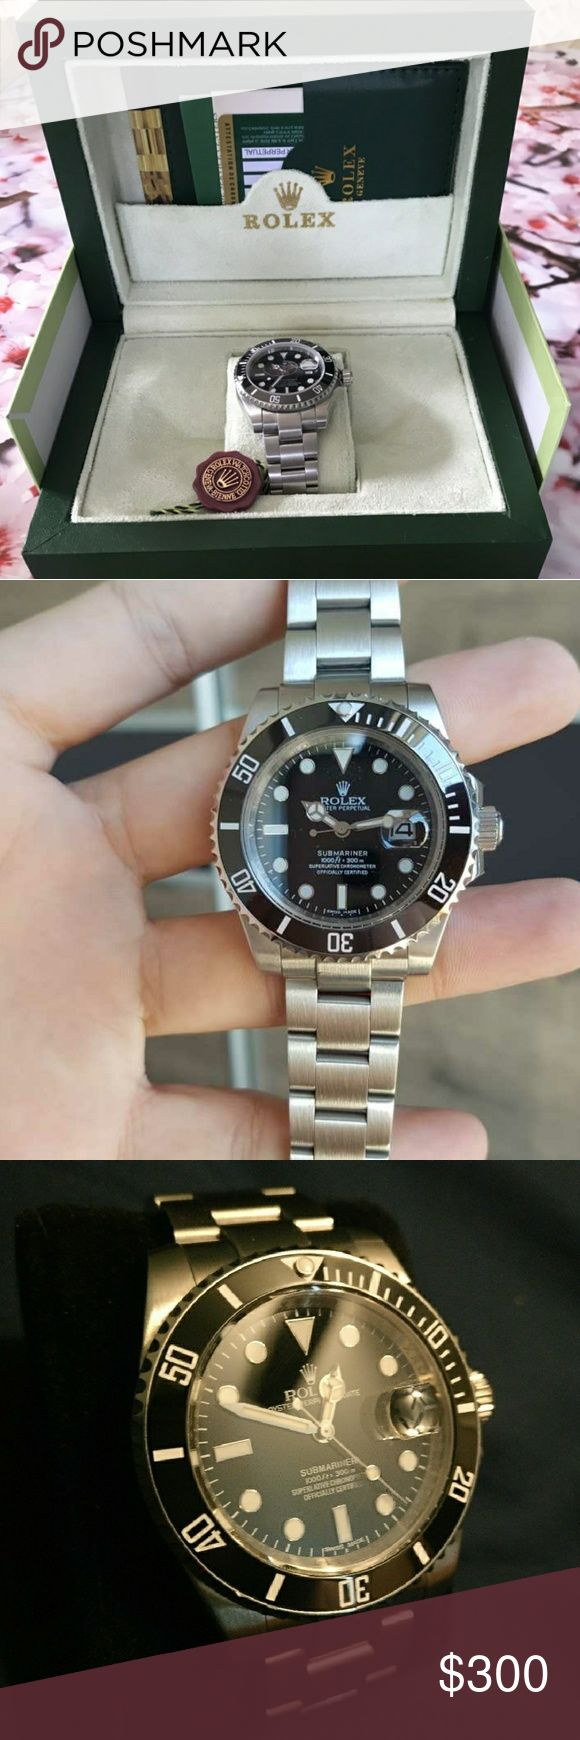 Rolex Submariner 116610 Rolex Submariner:  -High quality rep -Heavy Stainless Steel -Proper Magnification on Cyclops -Etching of Crown at 6 -GLIDES -Comes with Box and Papers  To purchase please contact me at: (520) 357-1398  I can get just about any rep watch  Watches I can get: AP, Breitling, Omega, Rolex, Tudor, Patek Philippe, Cartier, Hublot and more!!! Rolex Accessories Watches